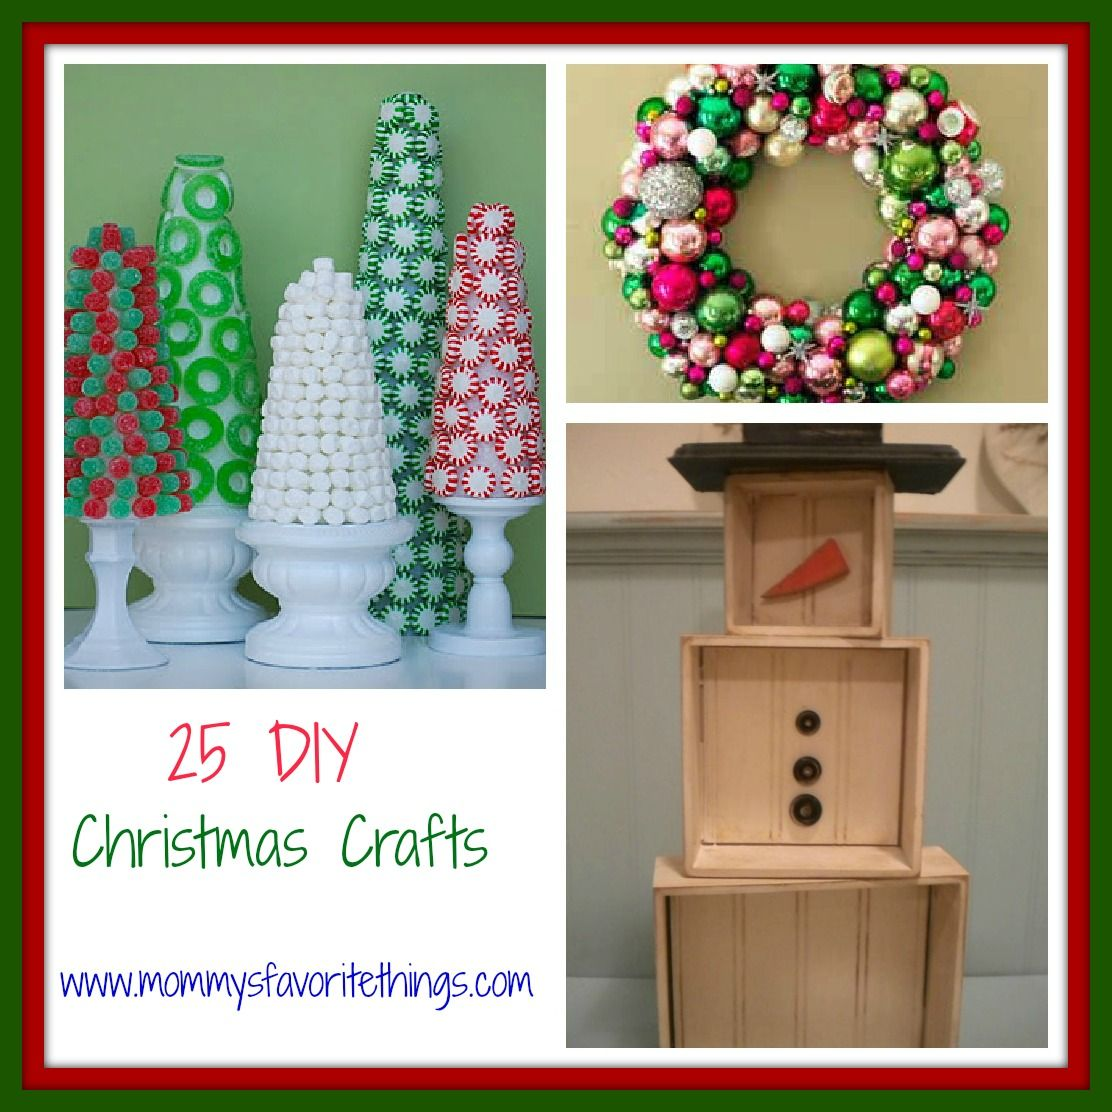 Rustic Mantel Décor That Will Adorn Your Bored To Death: Mommy's Favorite Things: 25 DIY Christmas Crafts